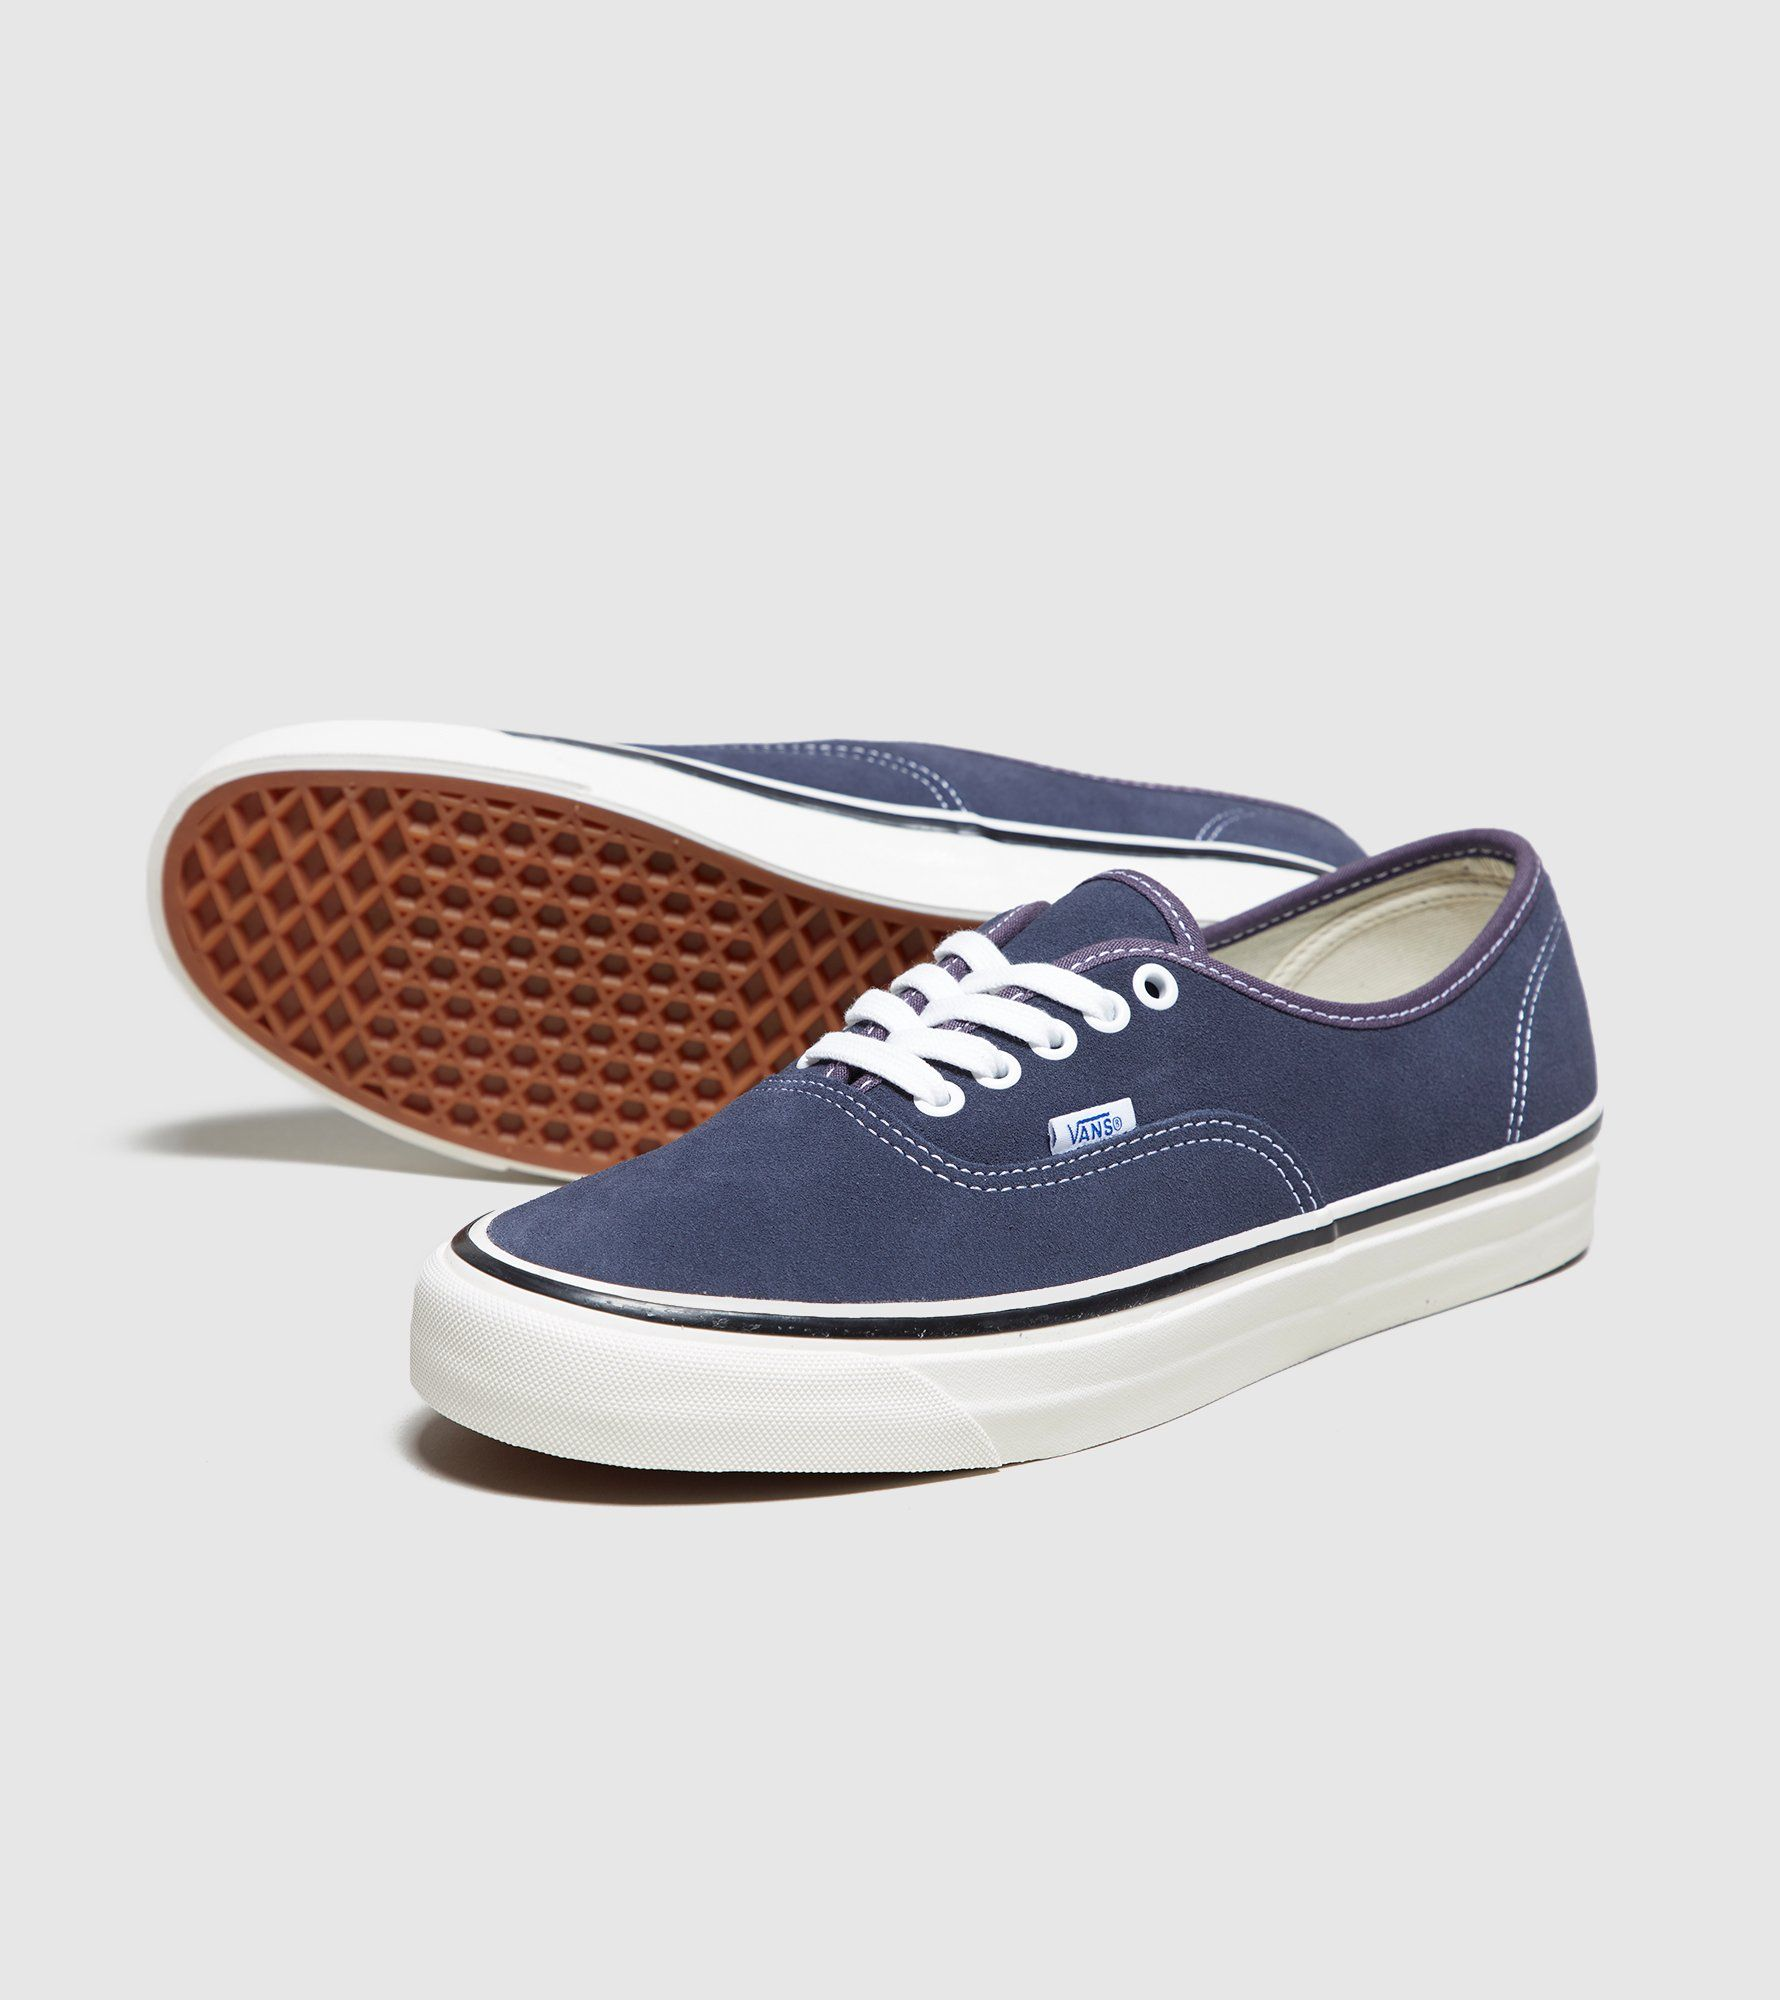 Vans Anaheim Authentic Suede